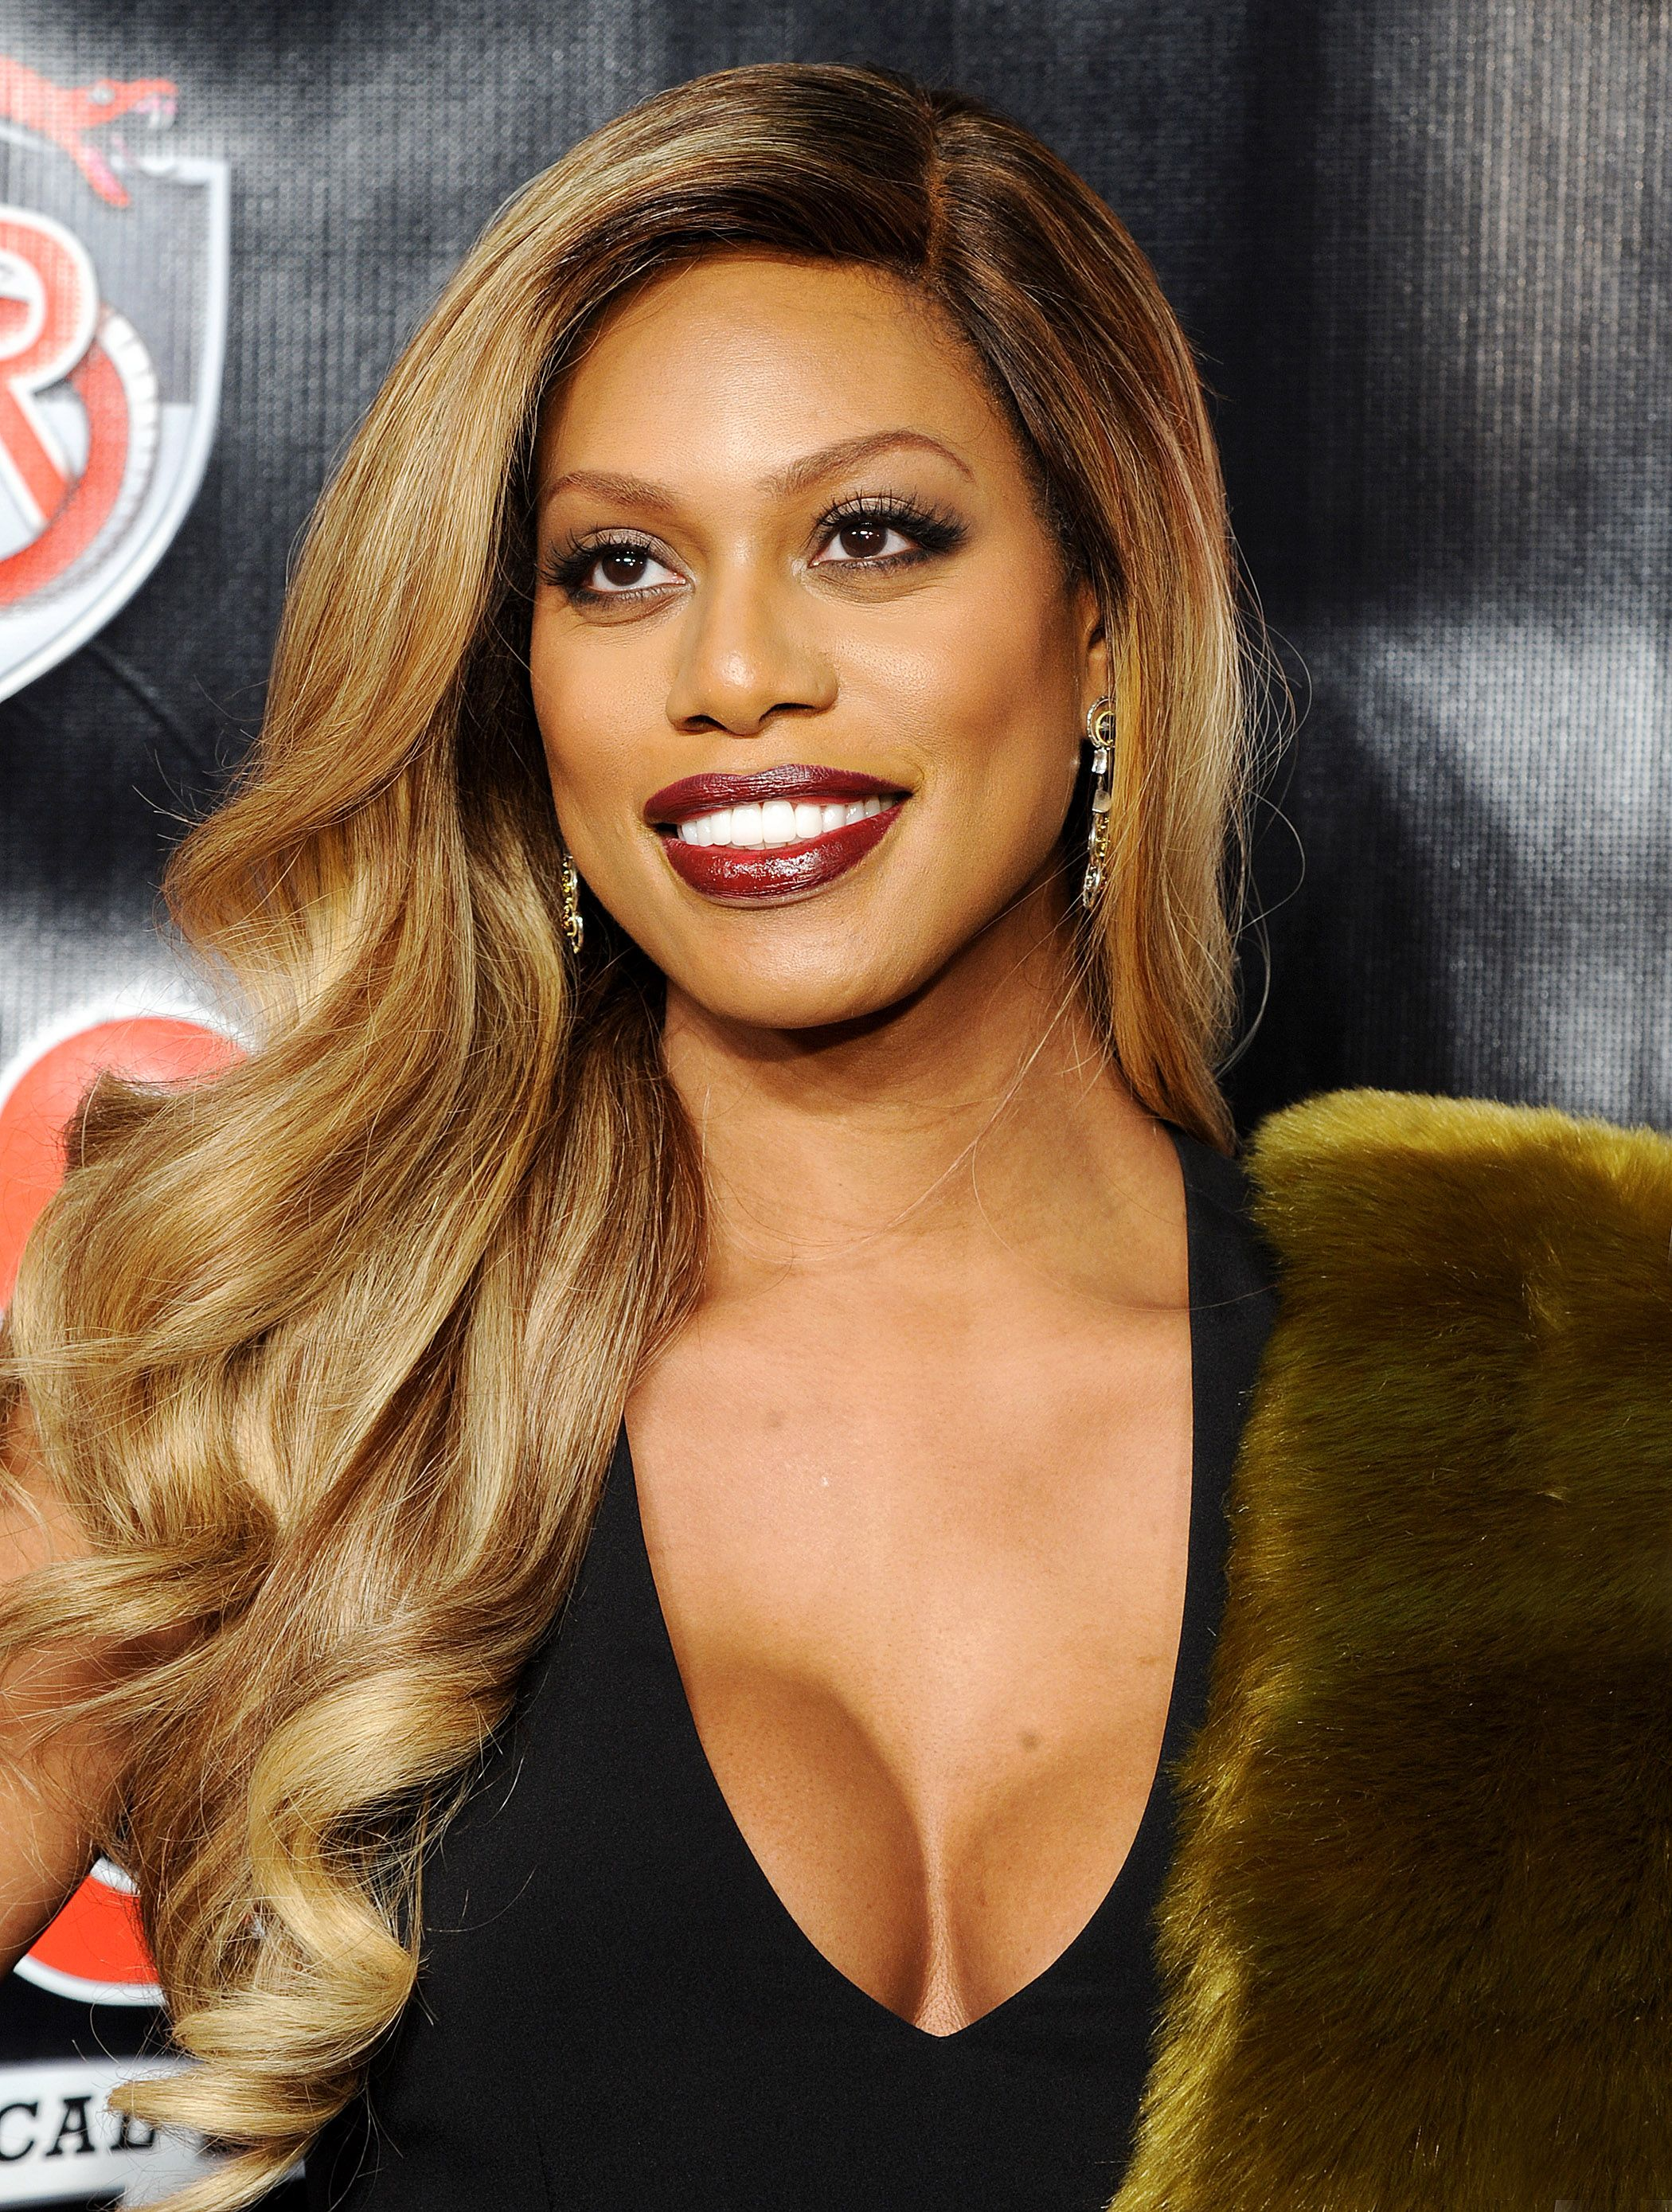 Laverne Cox Cleavage Phot...